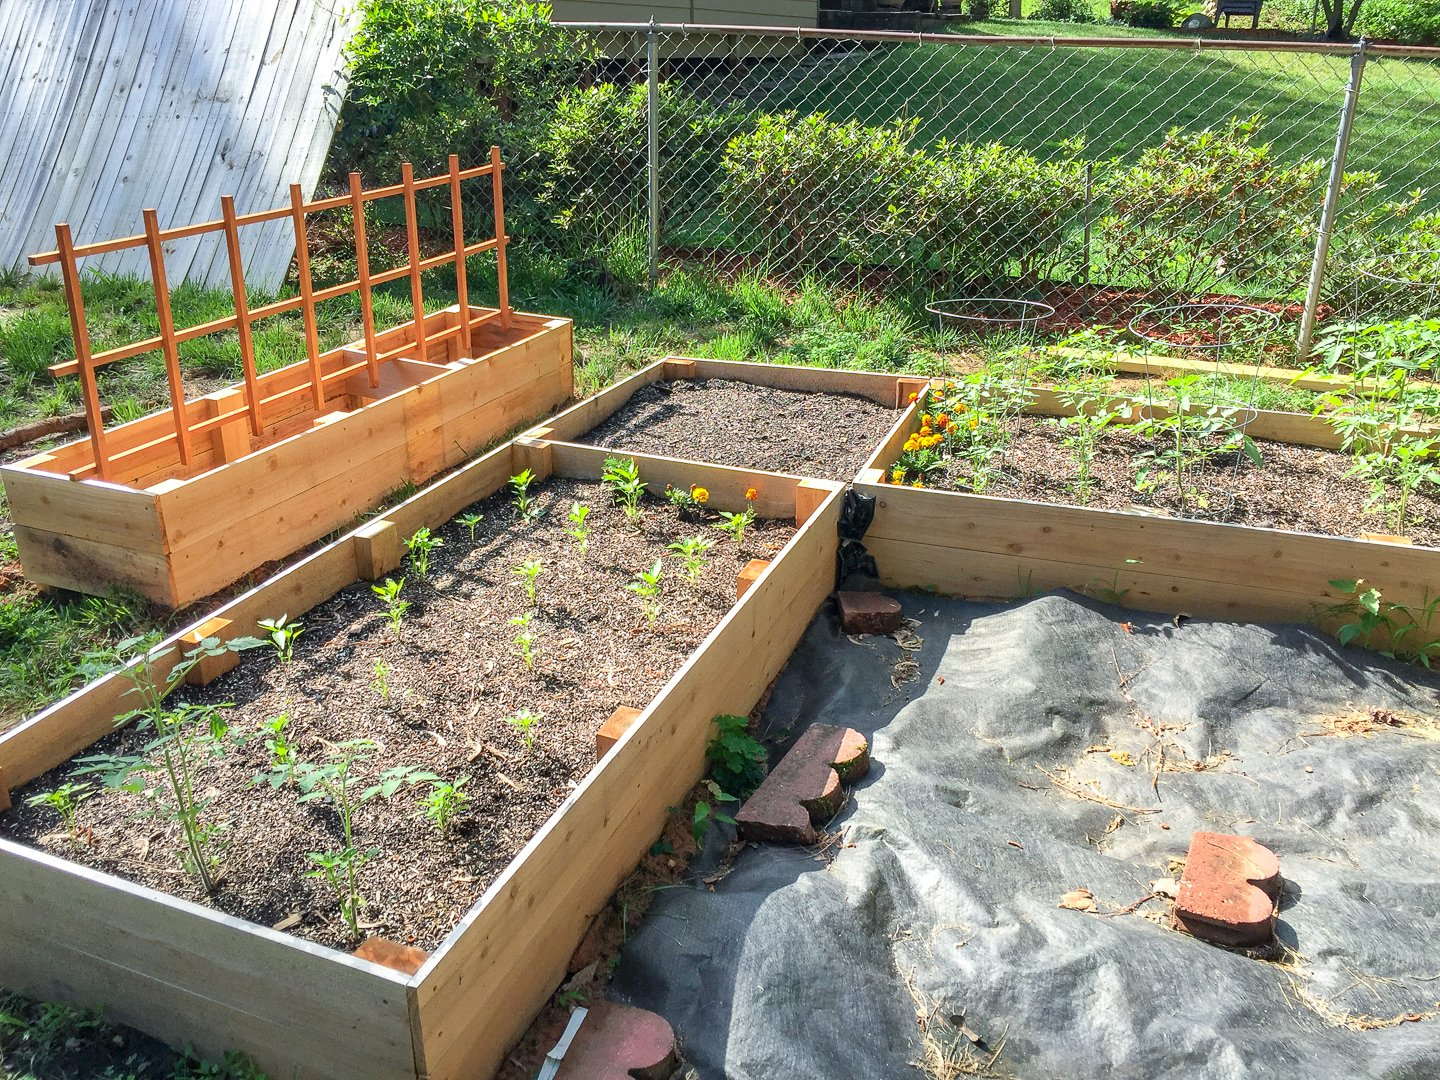 new vegetable garden bed area in back yard